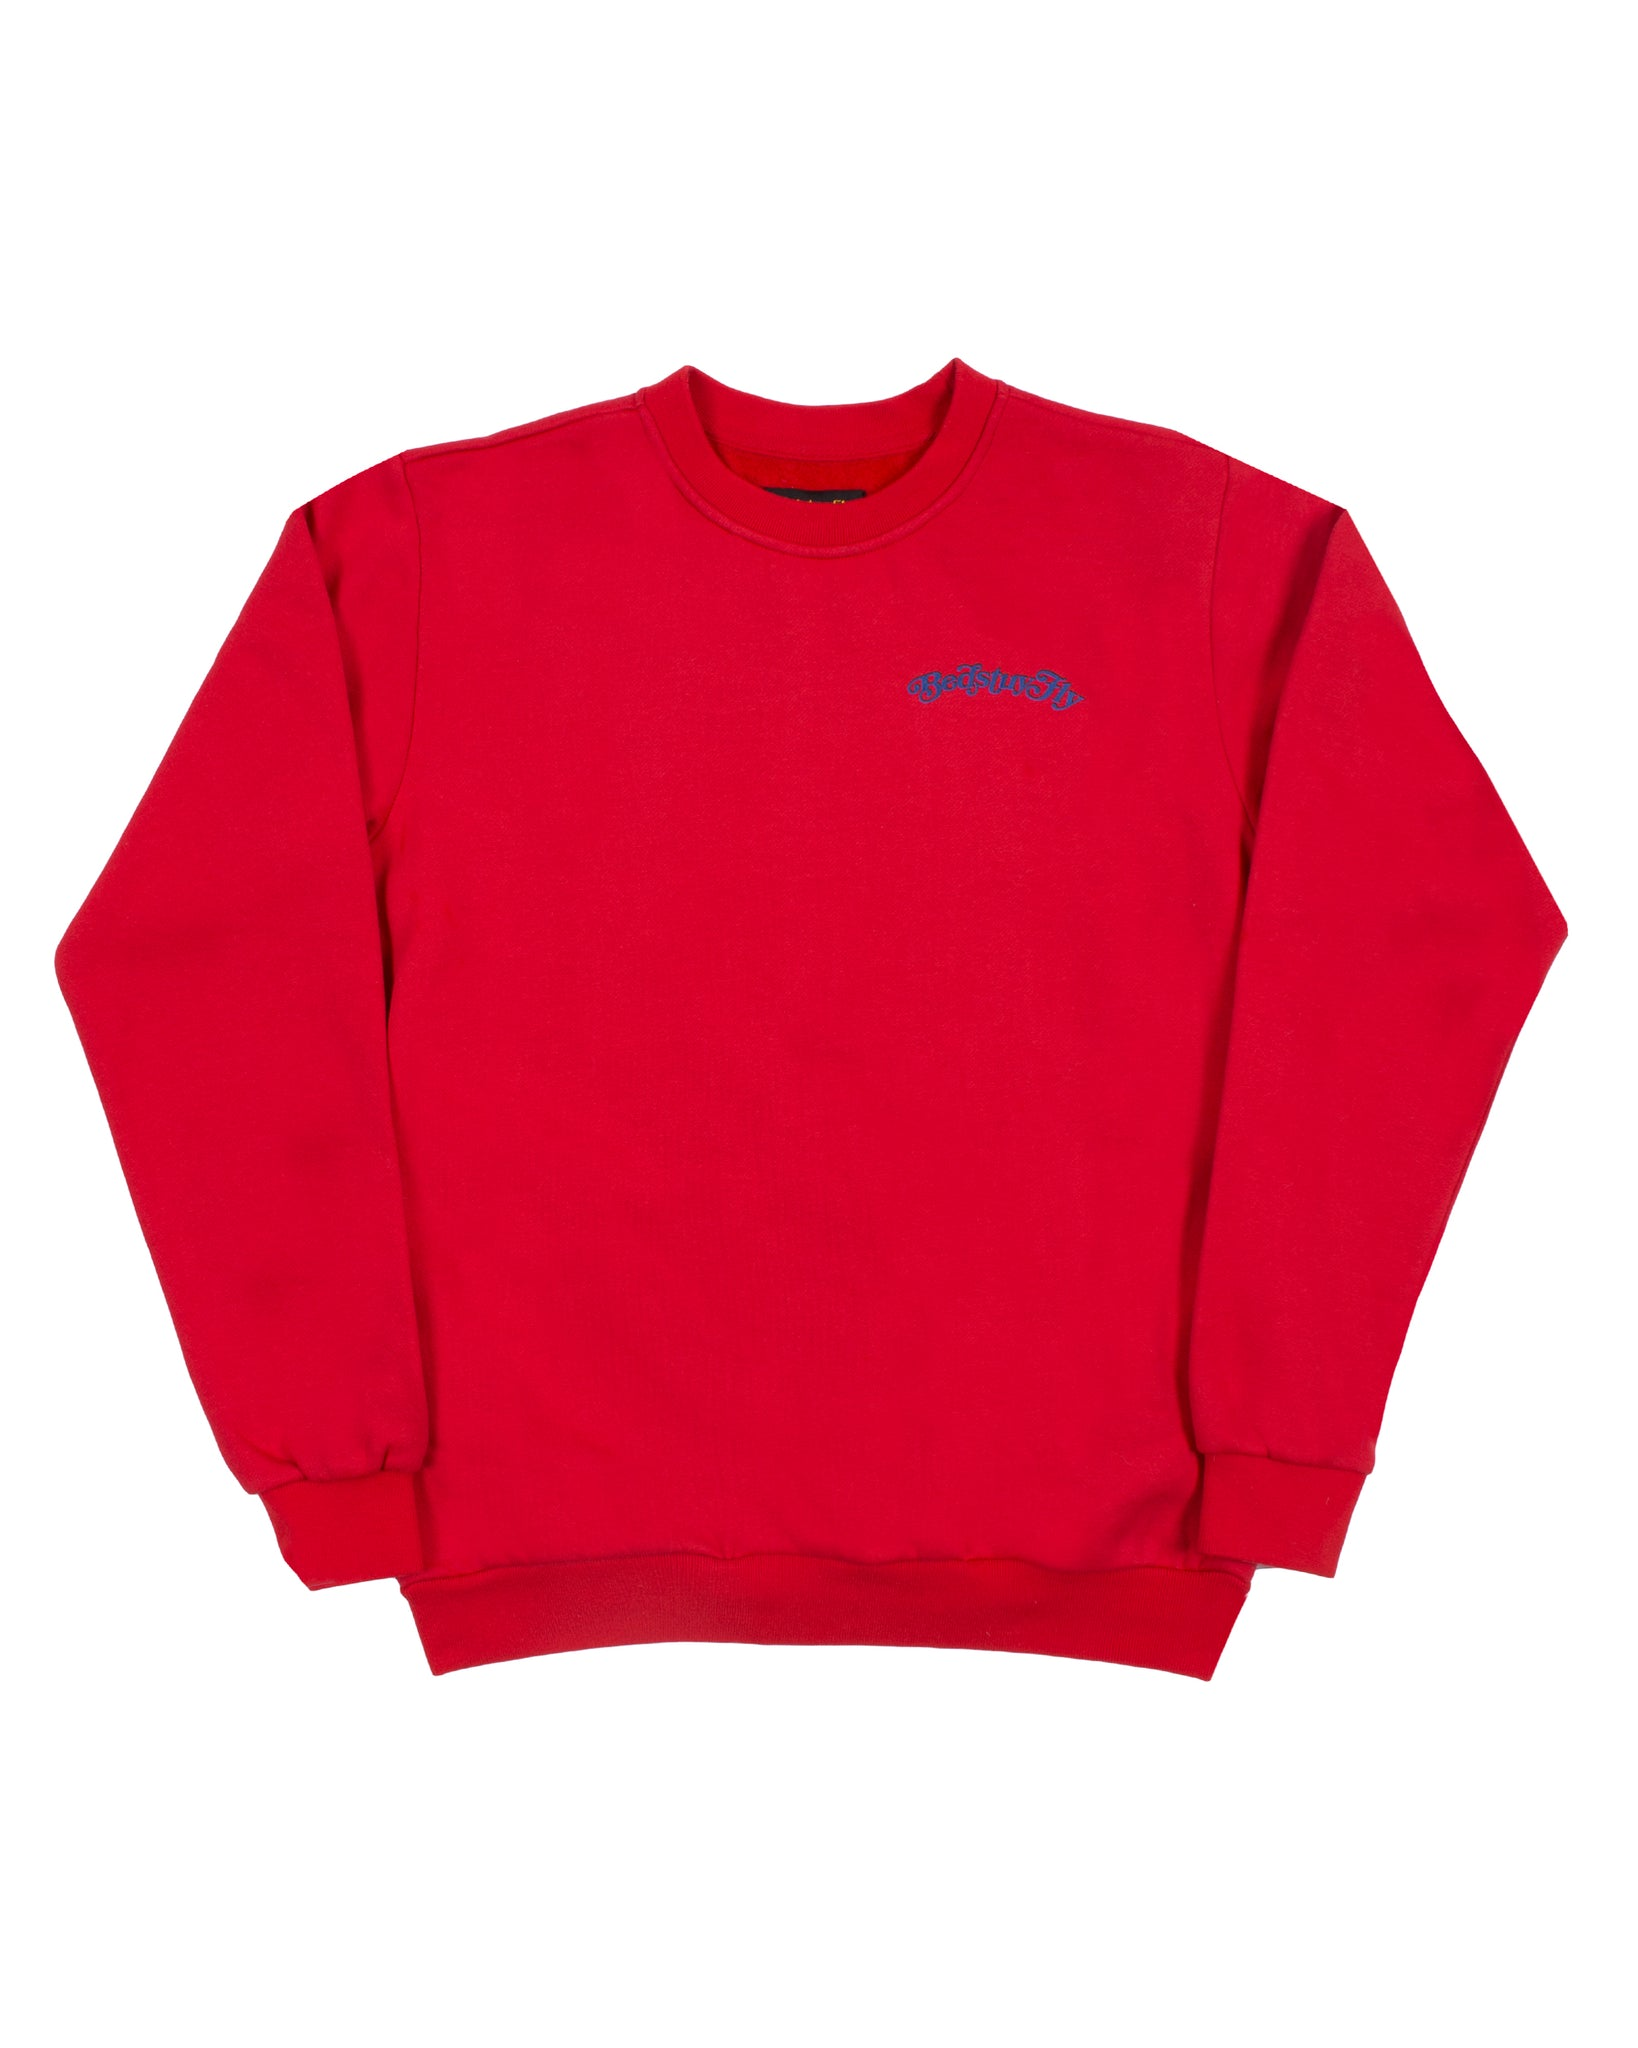 Mind Your Business Sweatshirt (Red/Blue)